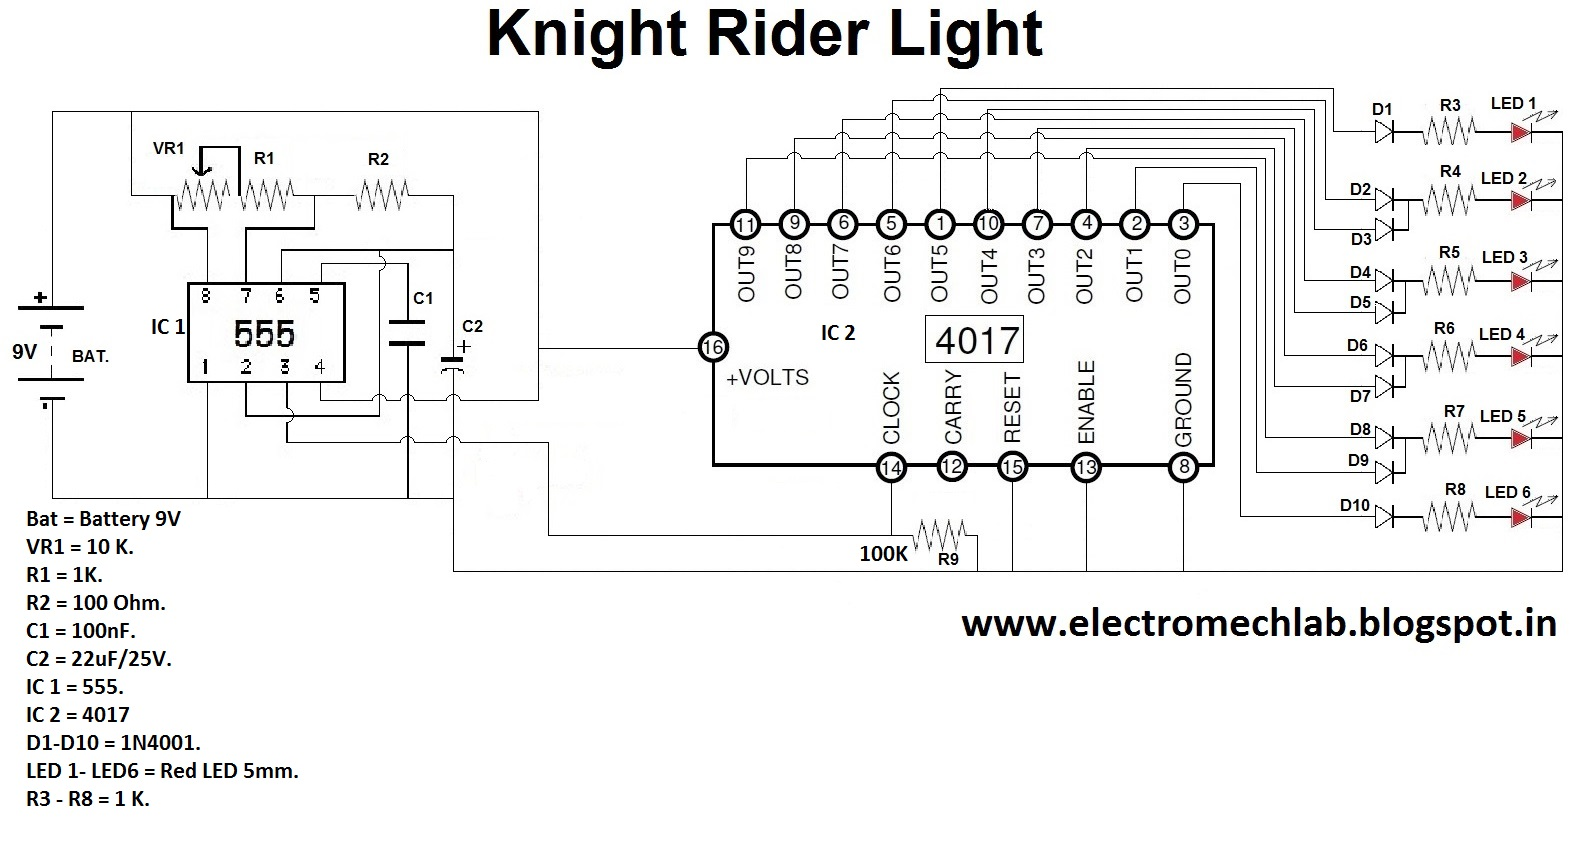 Electromech Lab How To Make Knight Rider Circuit With Ic 555 And 4017 Timer As Astable Multivibrator These Must Be Connected In Proper Polarity